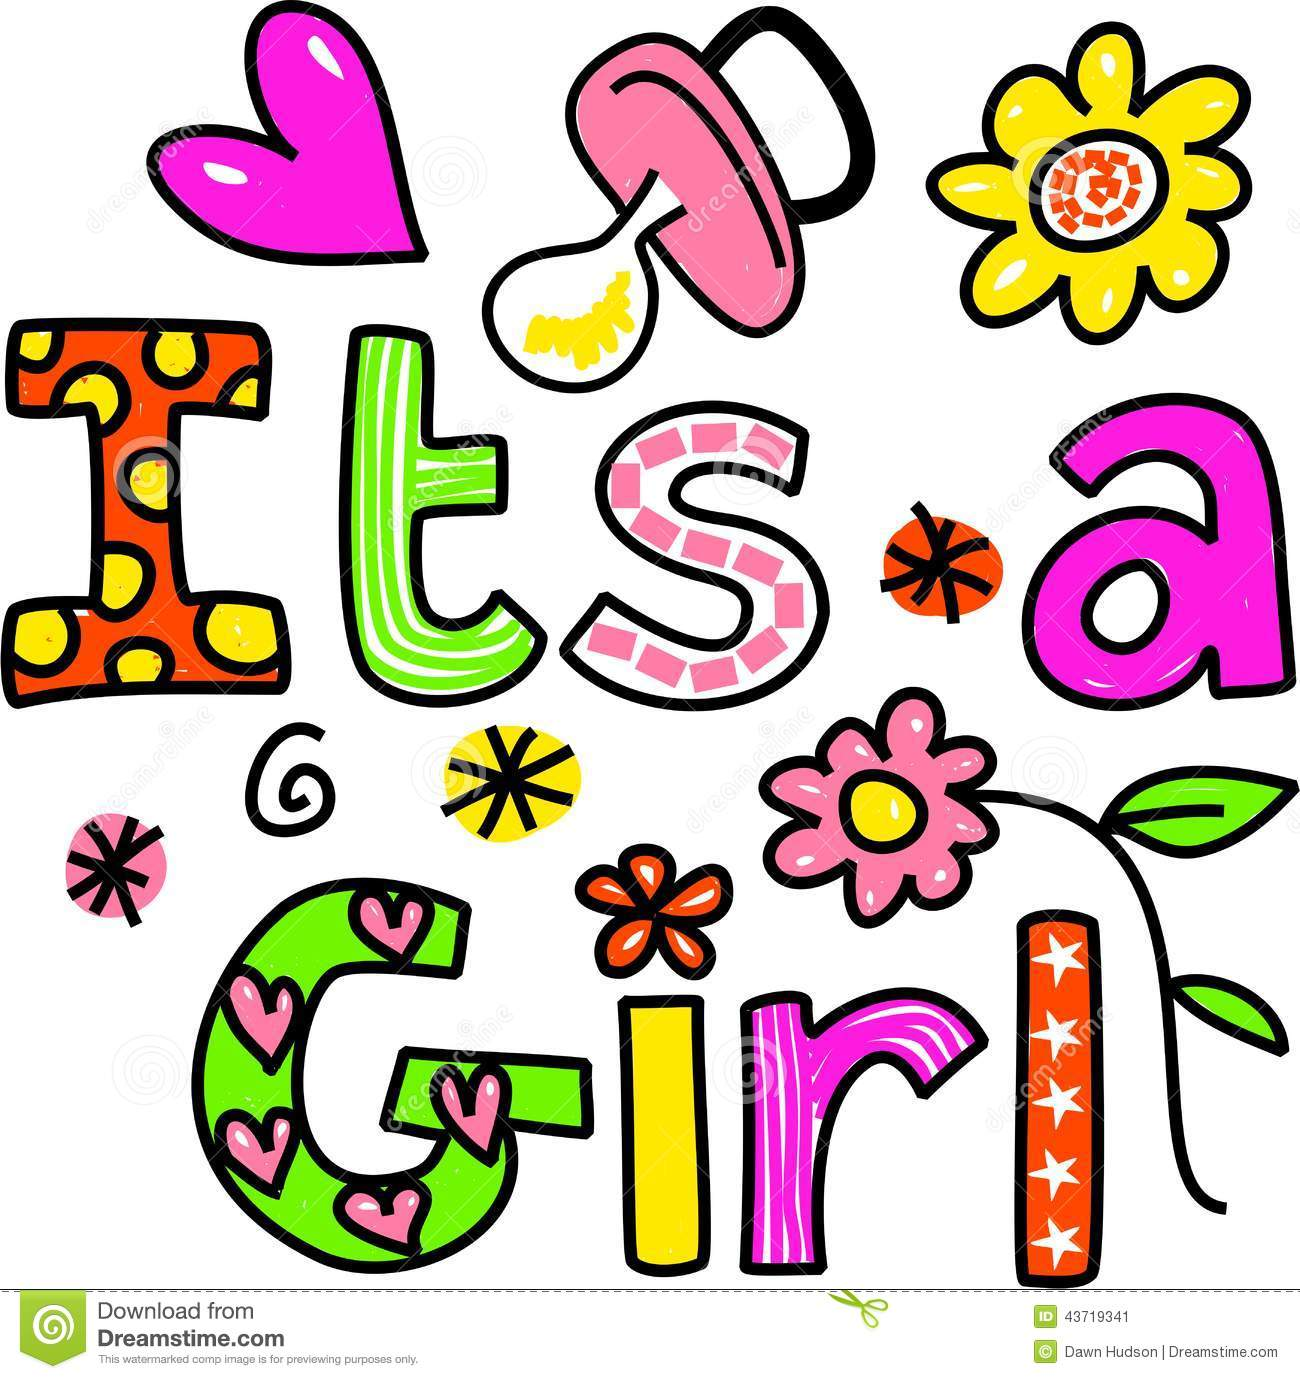 it s a girl cartoon text clipart stock illustration illustration rh dreamstime com Cheer Clip Art Vacation Clip Art